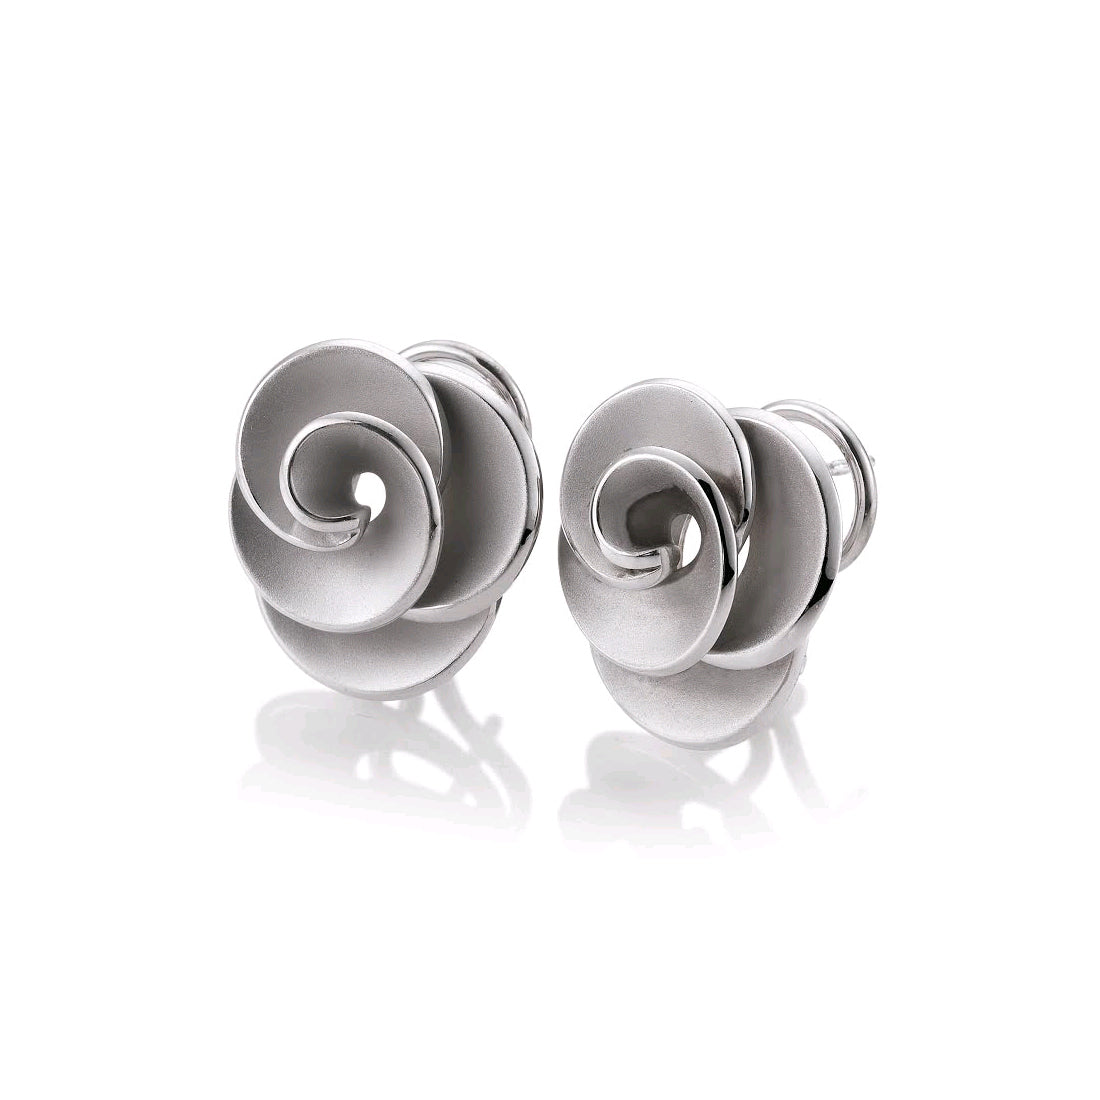 Rose Design Clip Post Earrings, Sterling Silver